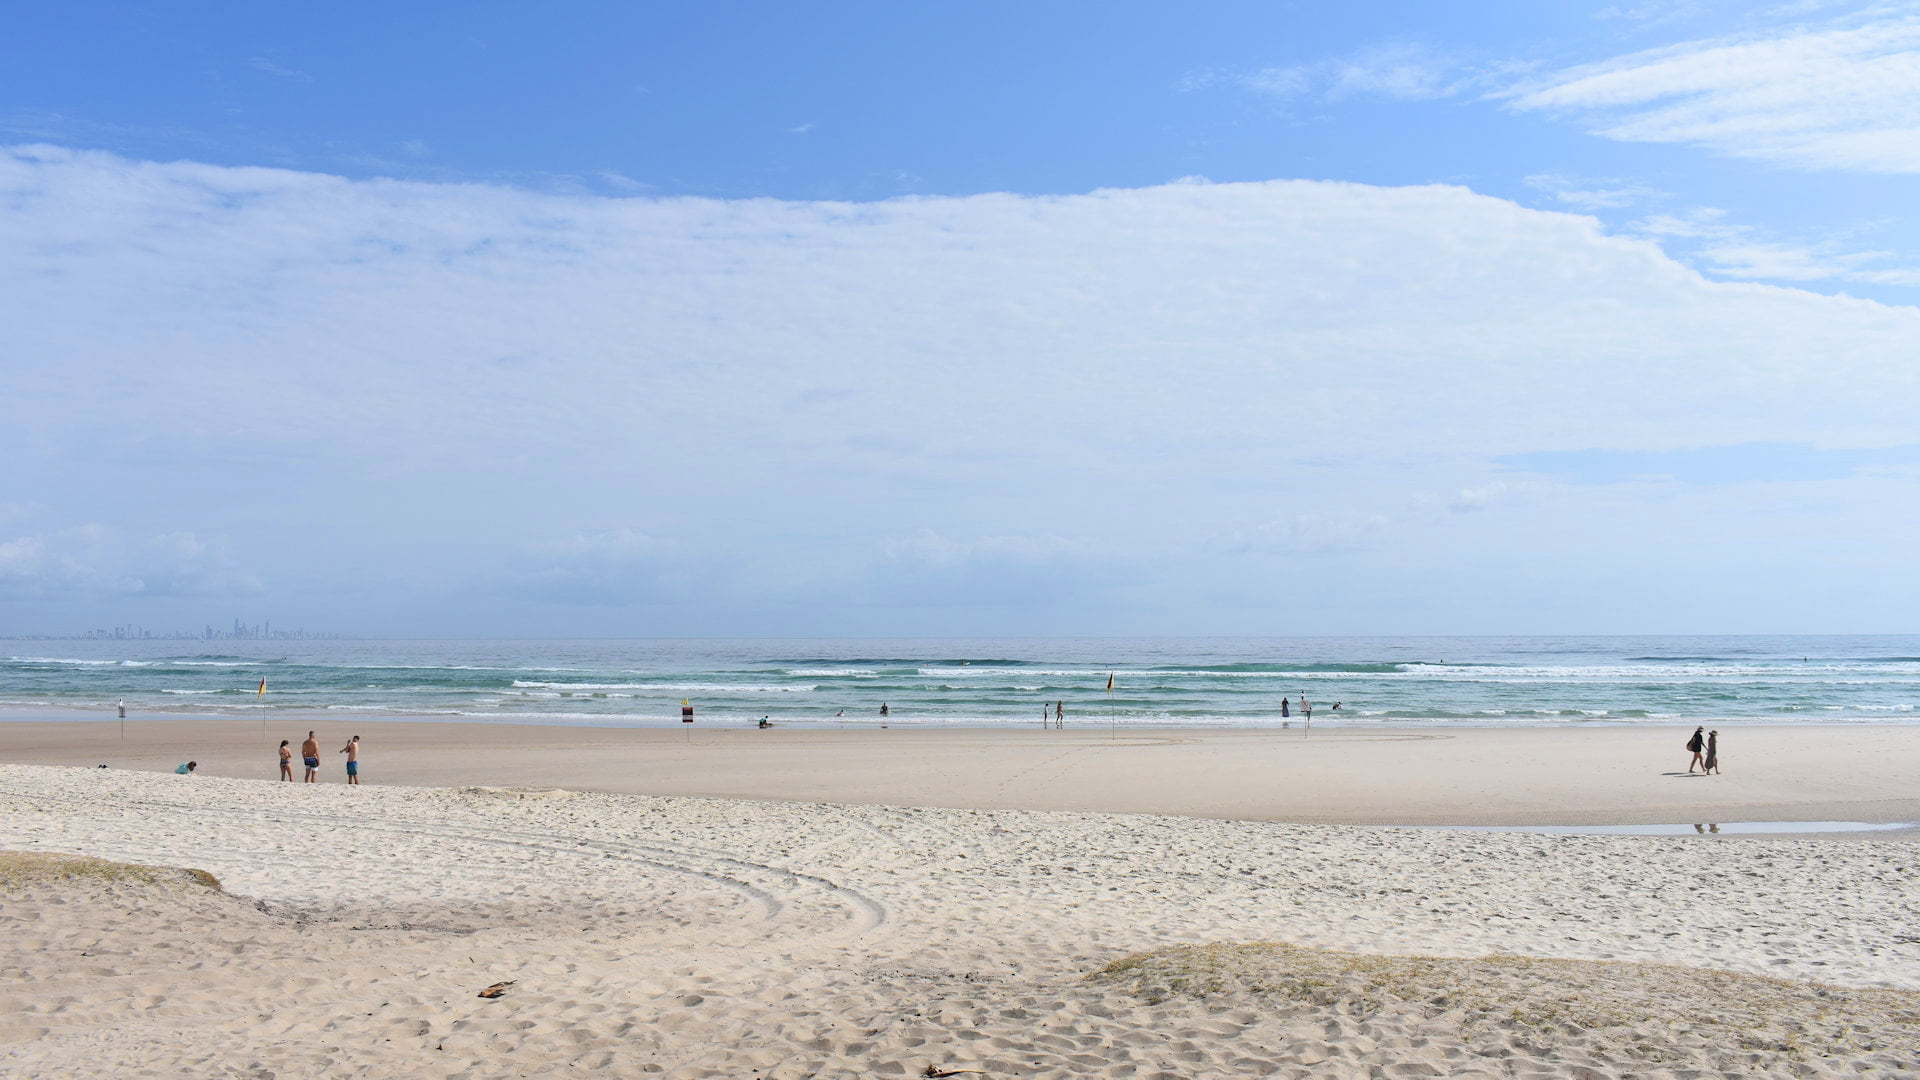 Ocean Beach at Kirra Beach in the Gold Coast